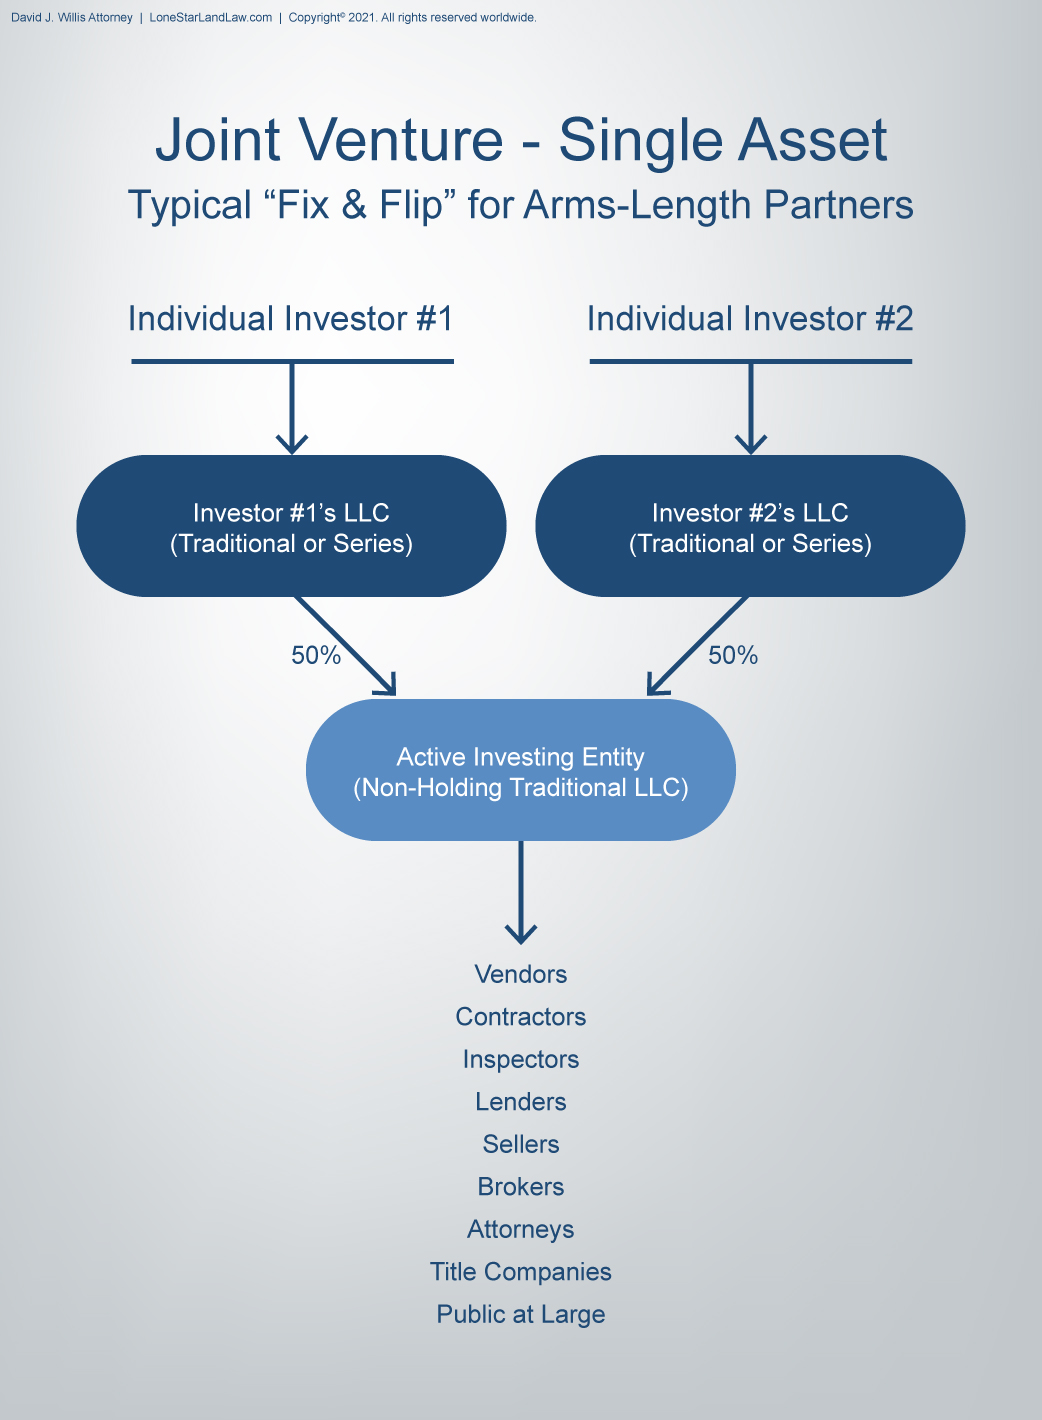 Asset Protection Graphic - Joint Venture with Single Asset